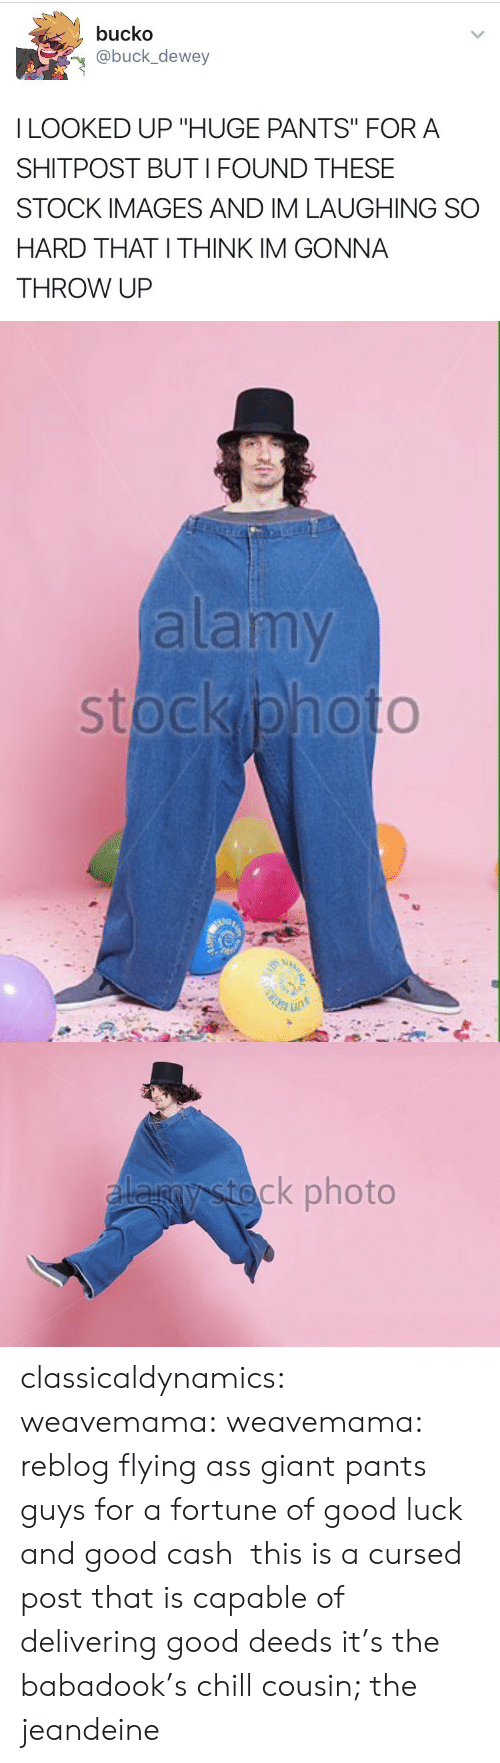 """Ass, Chill, and Dewey: bucko  @buck_dewey  I LOOKED UP """"HUGE PANTS"""" FORA  SHITPOST BUTI FOUND THESE  STOCK IMAGES AND IM LAUGHING SO  HARD THAT I THINK IM GONNA  THROW UP   alamy   ck photo classicaldynamics: weavemama:  weavemama:  reblog flying ass giant pants guys for a fortune of good luck and good cash  this is a cursed post that is capable of delivering good deeds  it's the babadook's chill cousin; the jeandeine"""